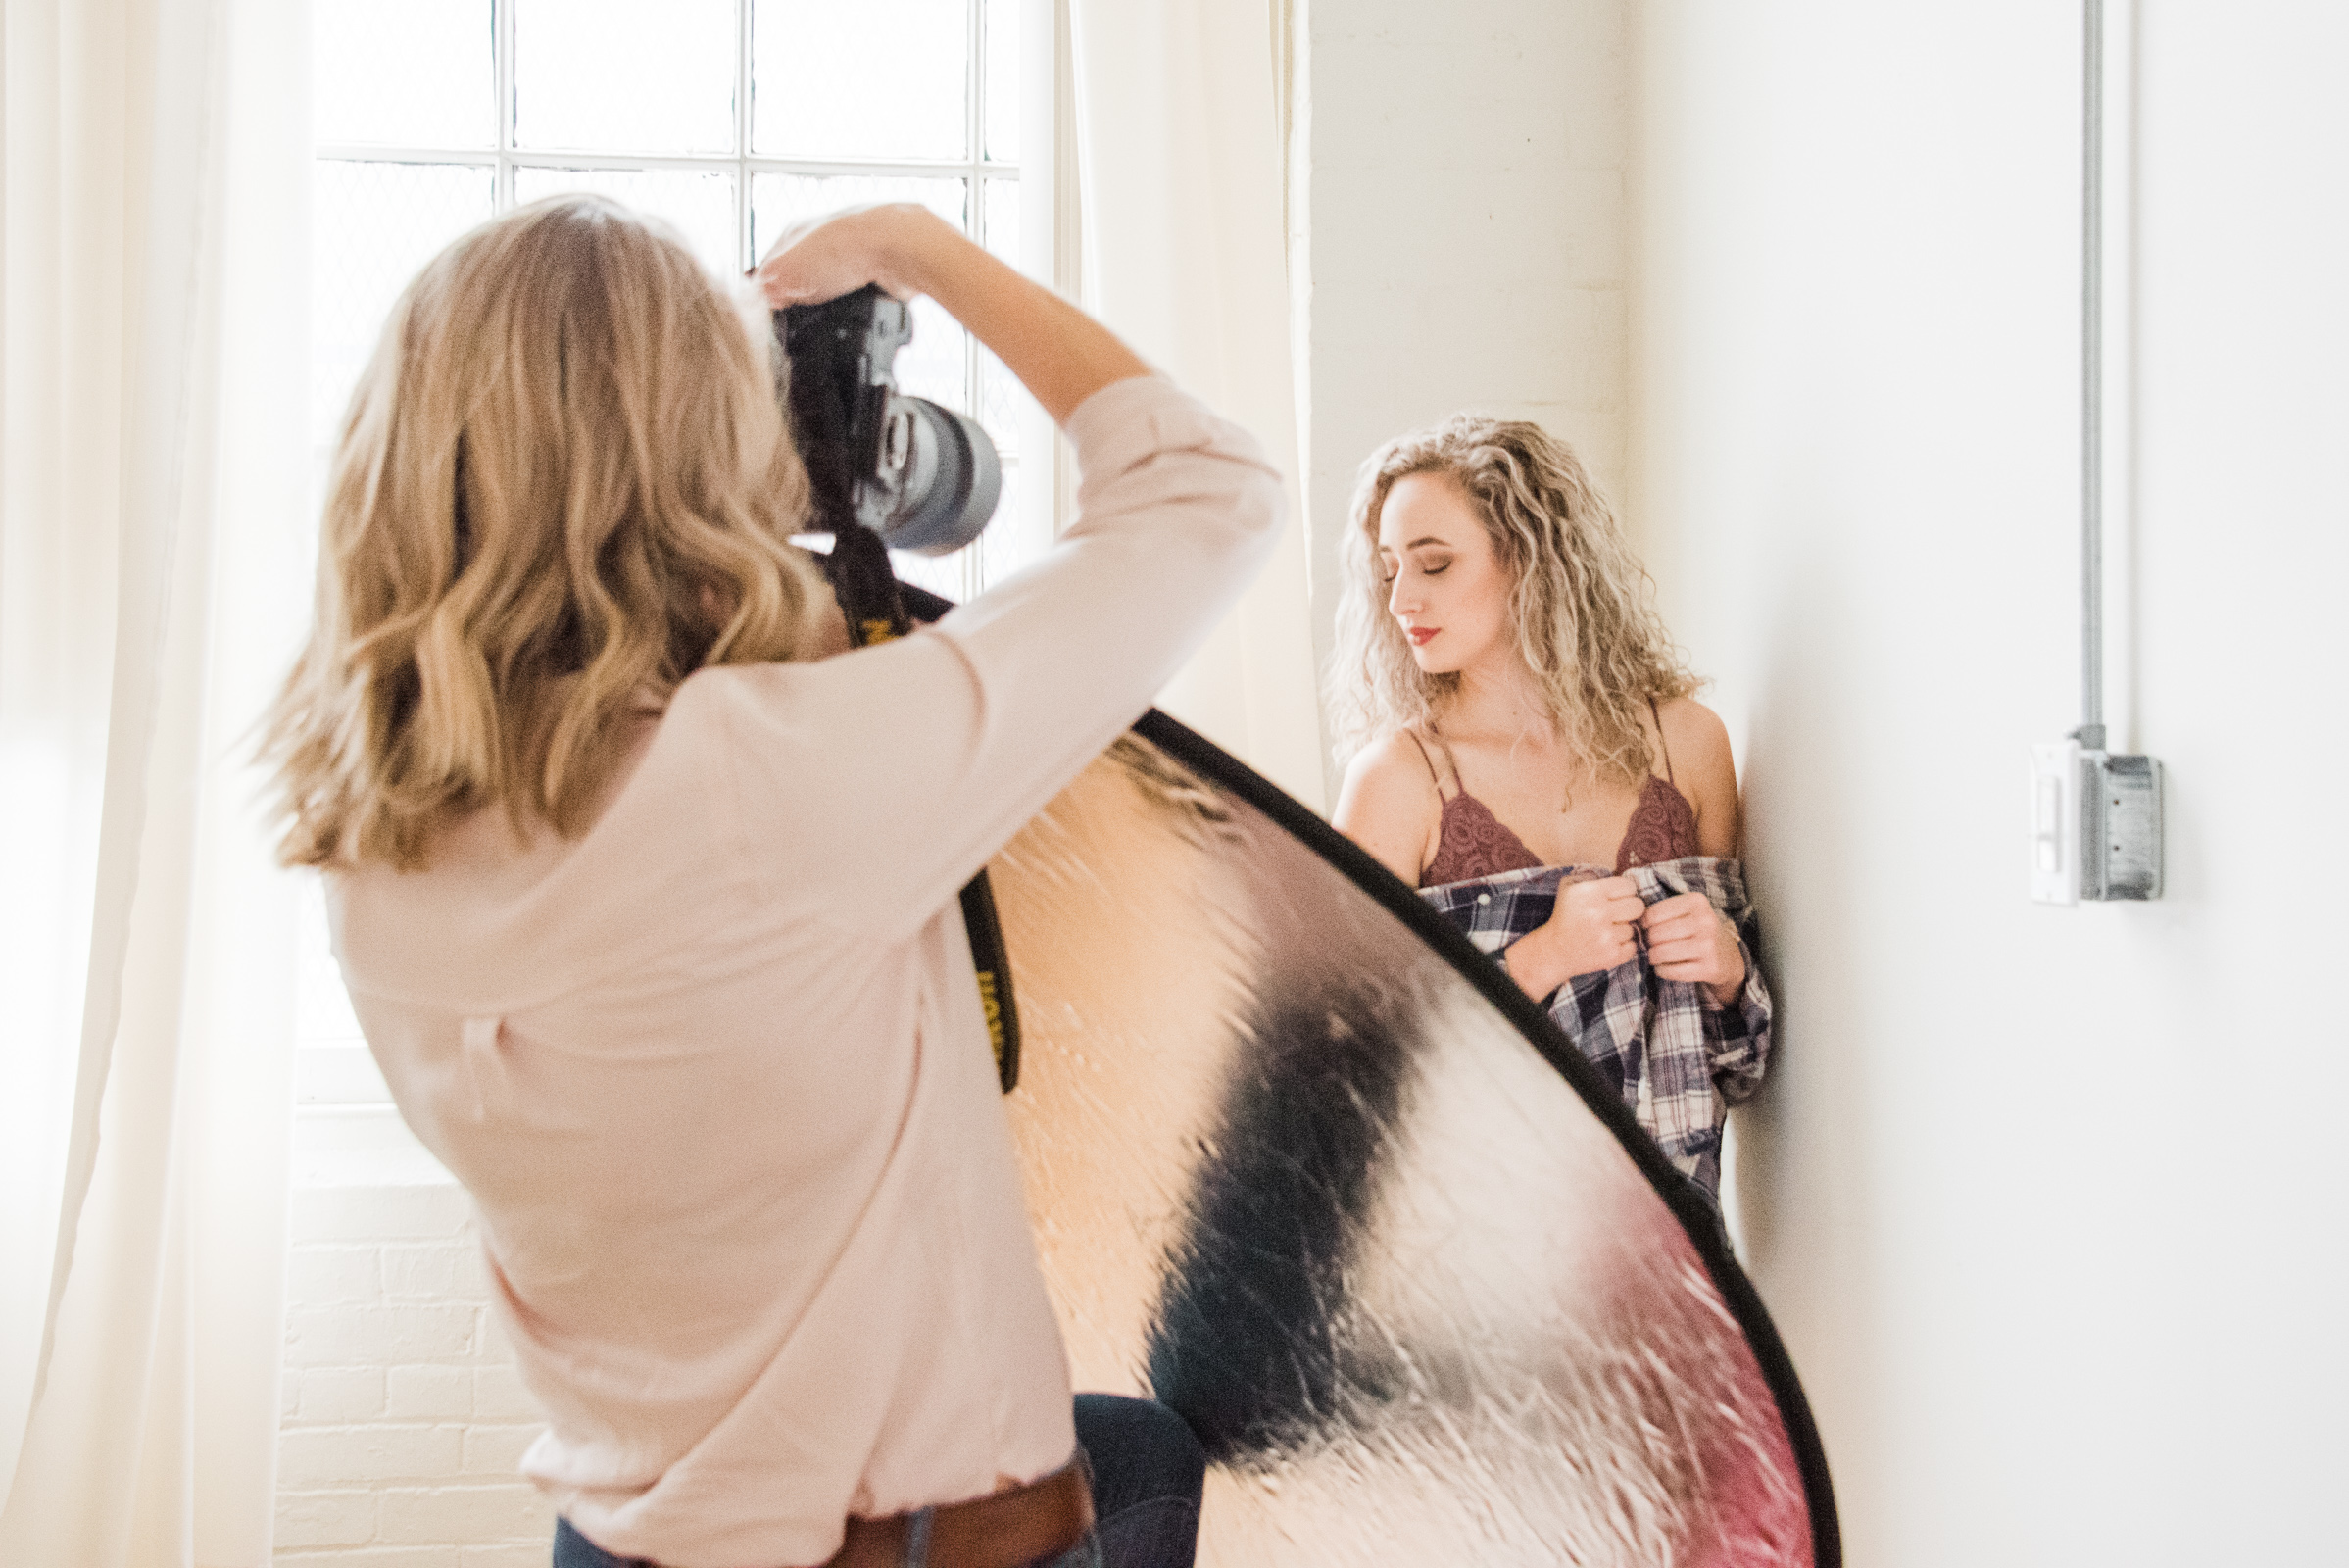 a boudoir photographer photographs her client, photographed as part of a behind the scenes brand shoot by jamie bannon photography.